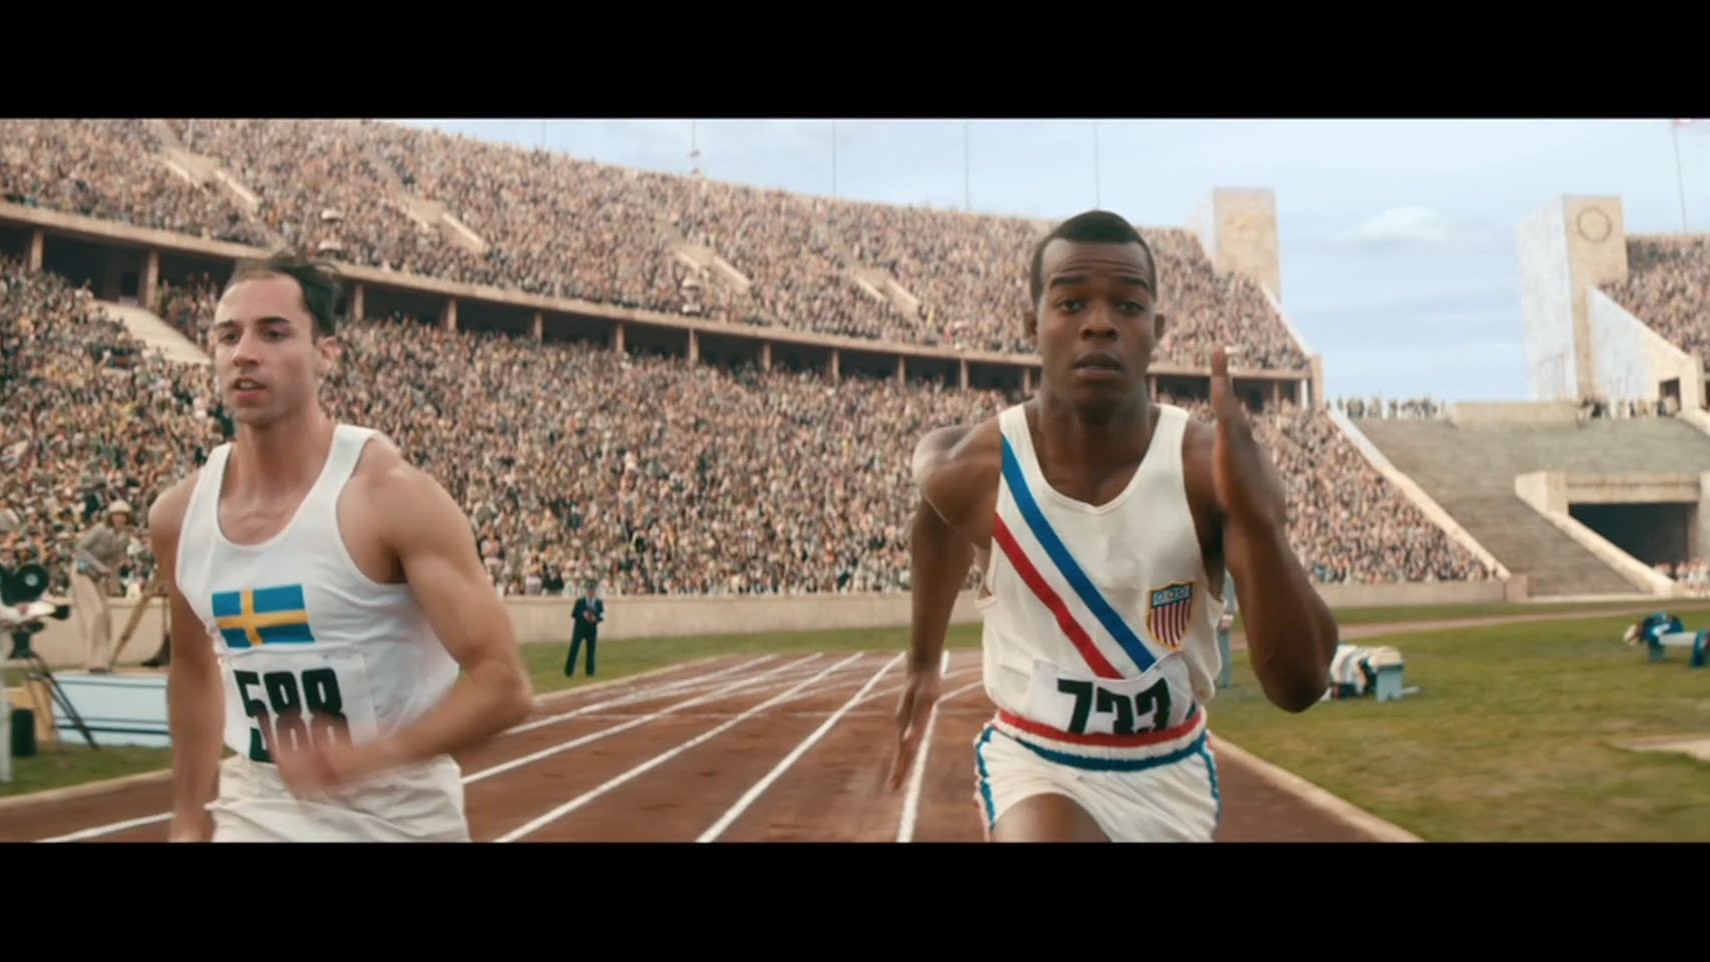 RACE – Trailer Tease – In Theaters February 19, 2016